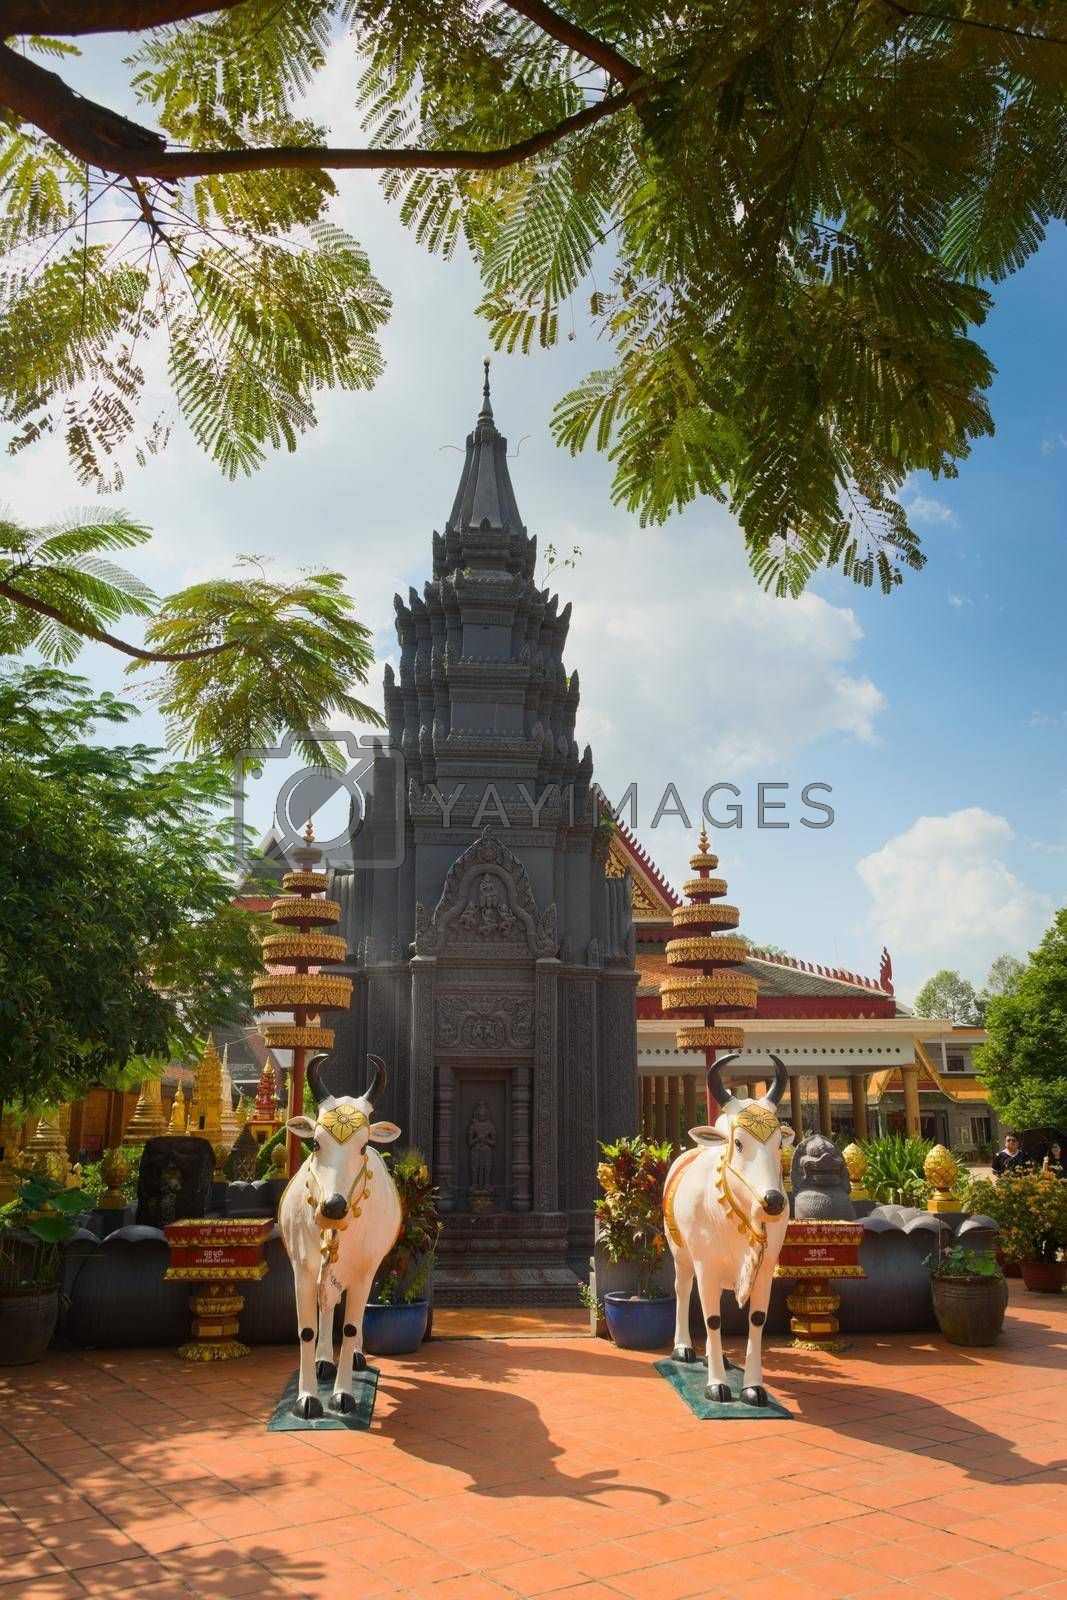 Royalty free image of 2019-11-16 / Siem Reap, Cambodia - Black stupa in Wat Preah Prom Rath, a buddhist temple complex built in the 13th century. by hernan_hyper